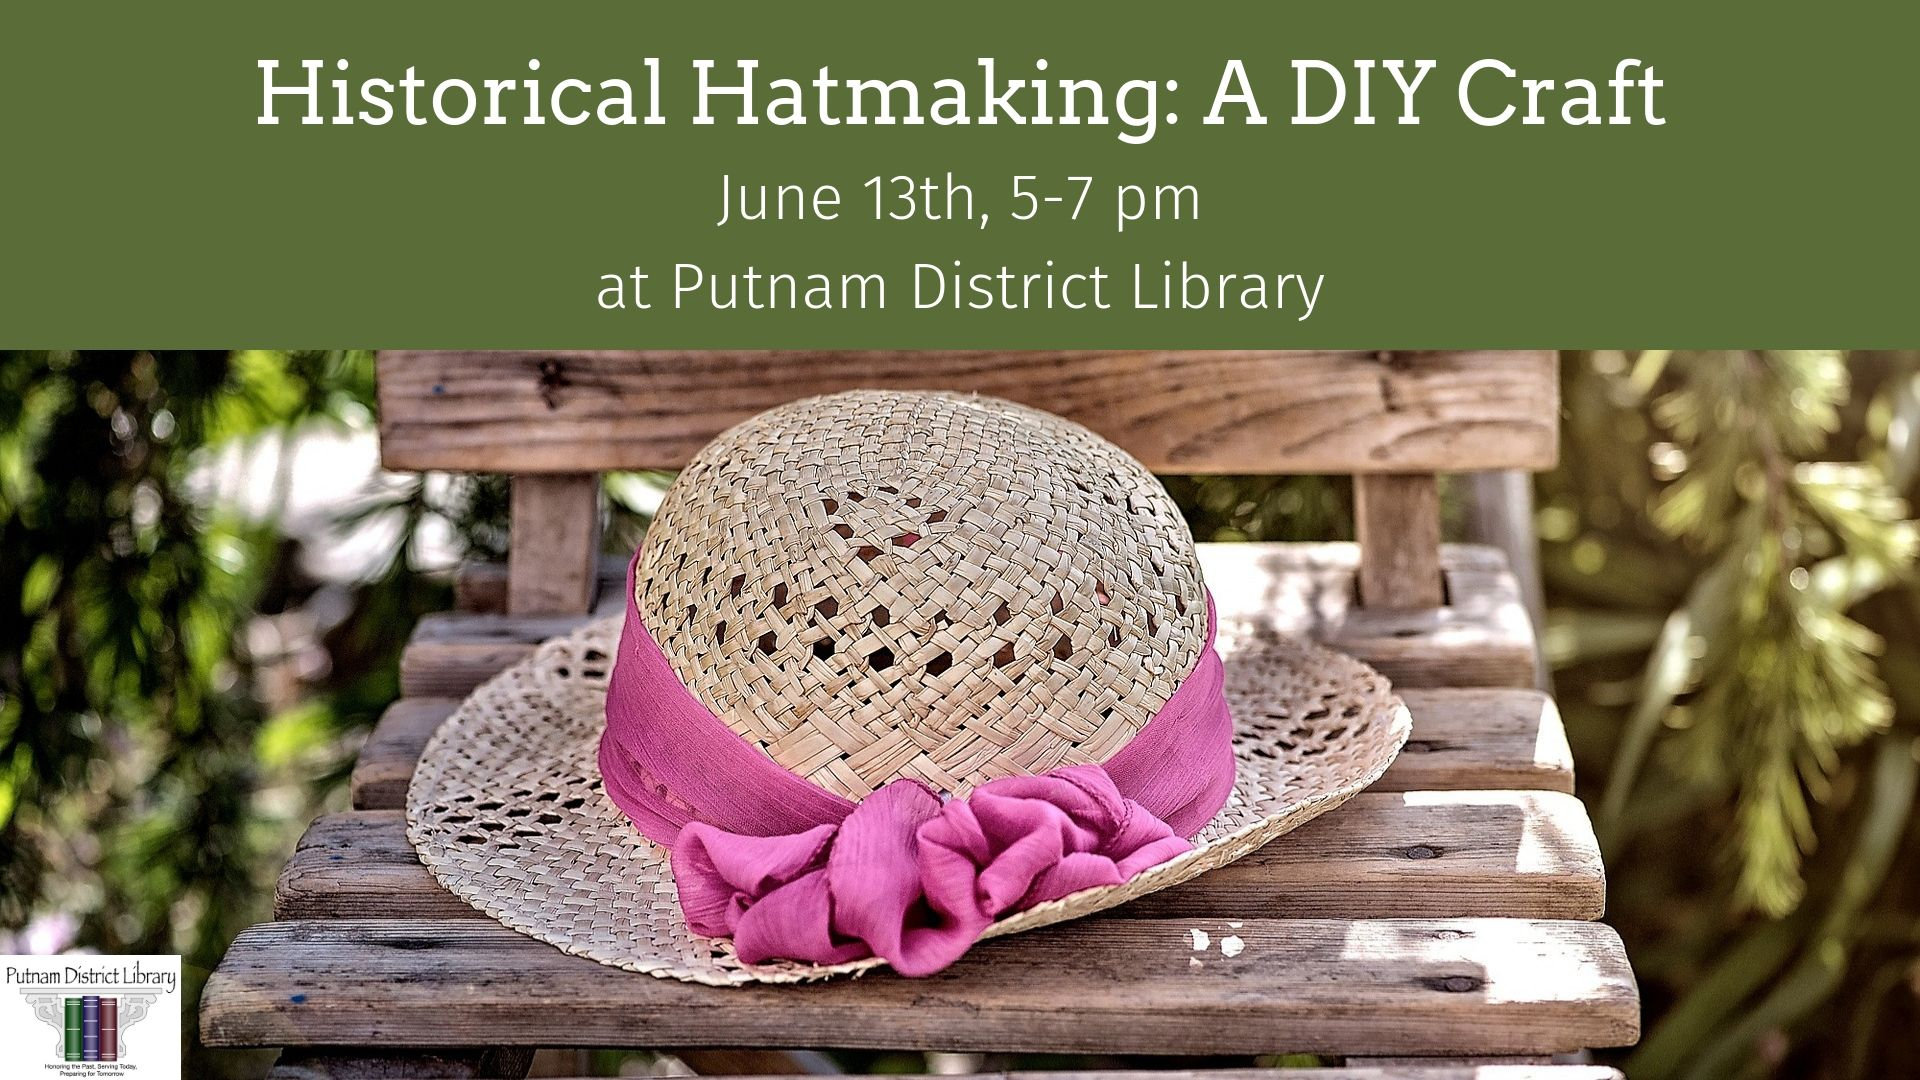 Historical Hatmaking: A DIY Craft